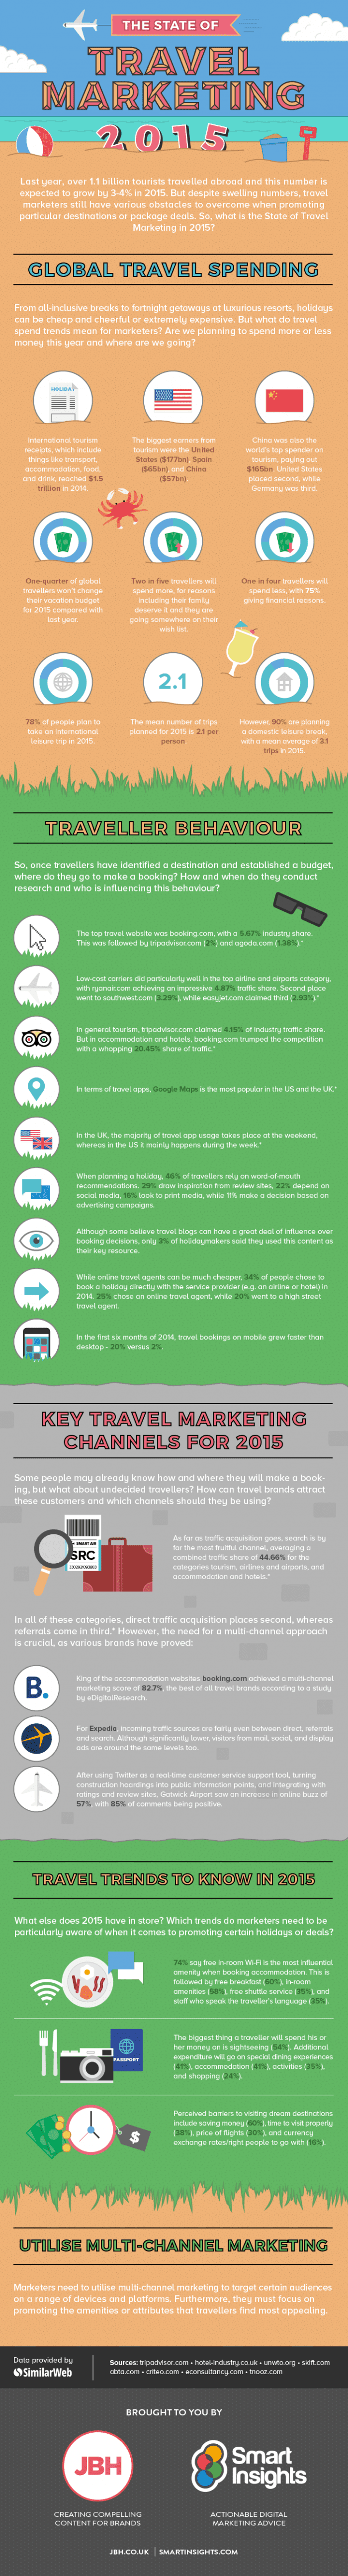 Travel marketing infographic